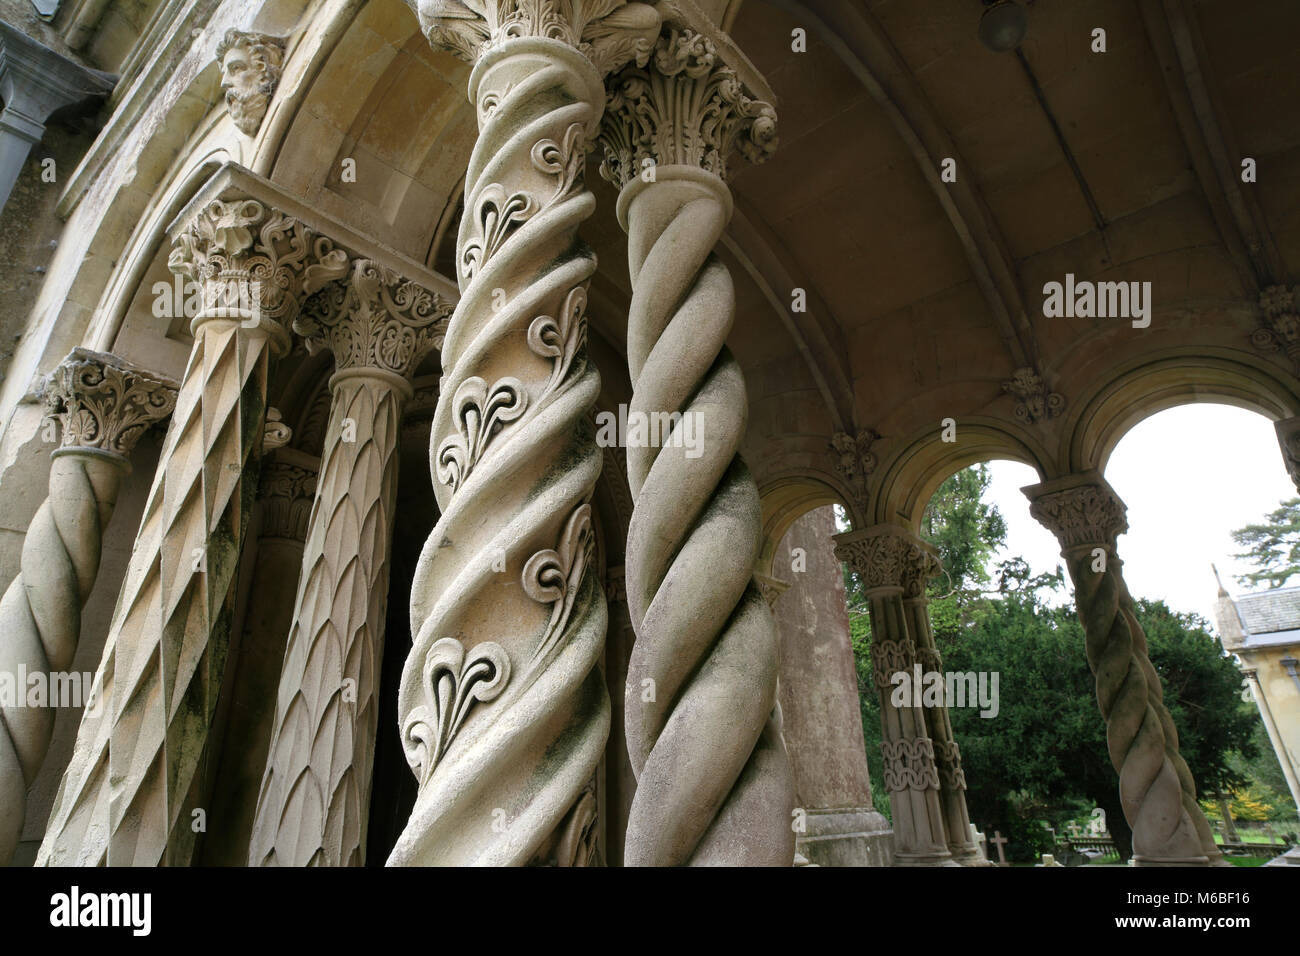 Ornate spiralling columns outside the Church of St Mary and St Nicholas, West Street, Wilton, Hampshire. Stock Photo